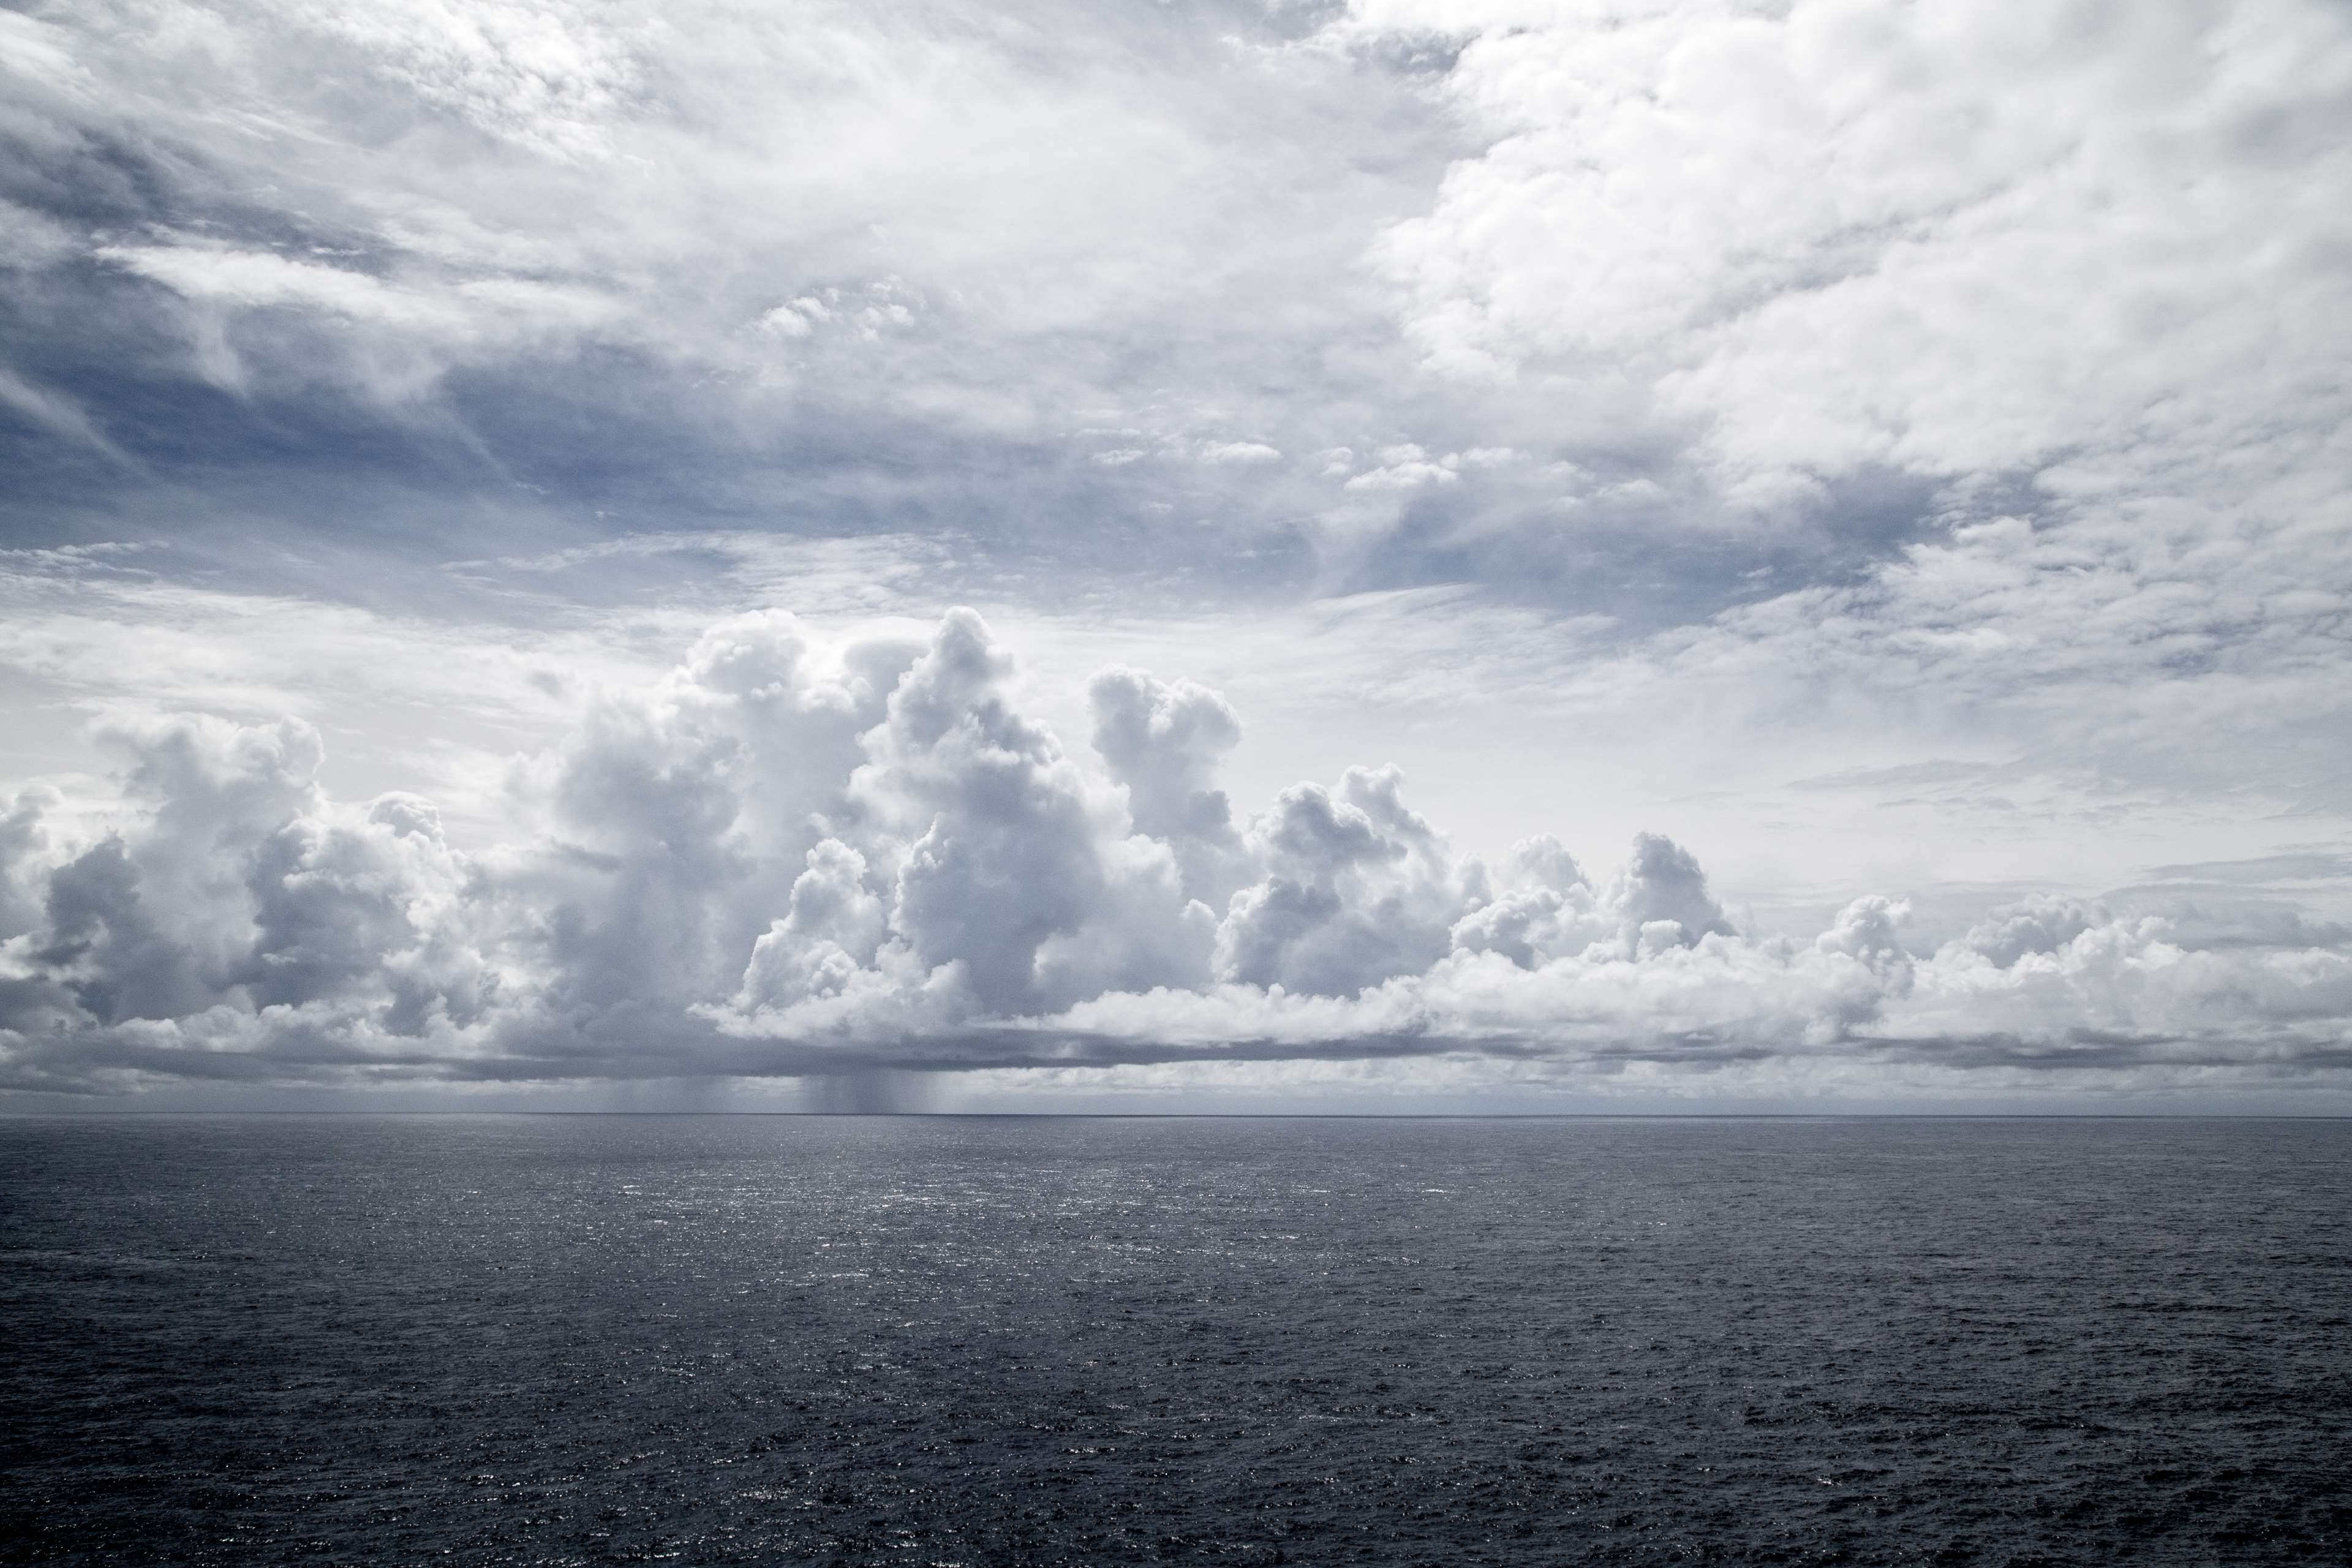 3840x2560 3061410 clouds, grey sky, ocean 4k wallpaper and background ...